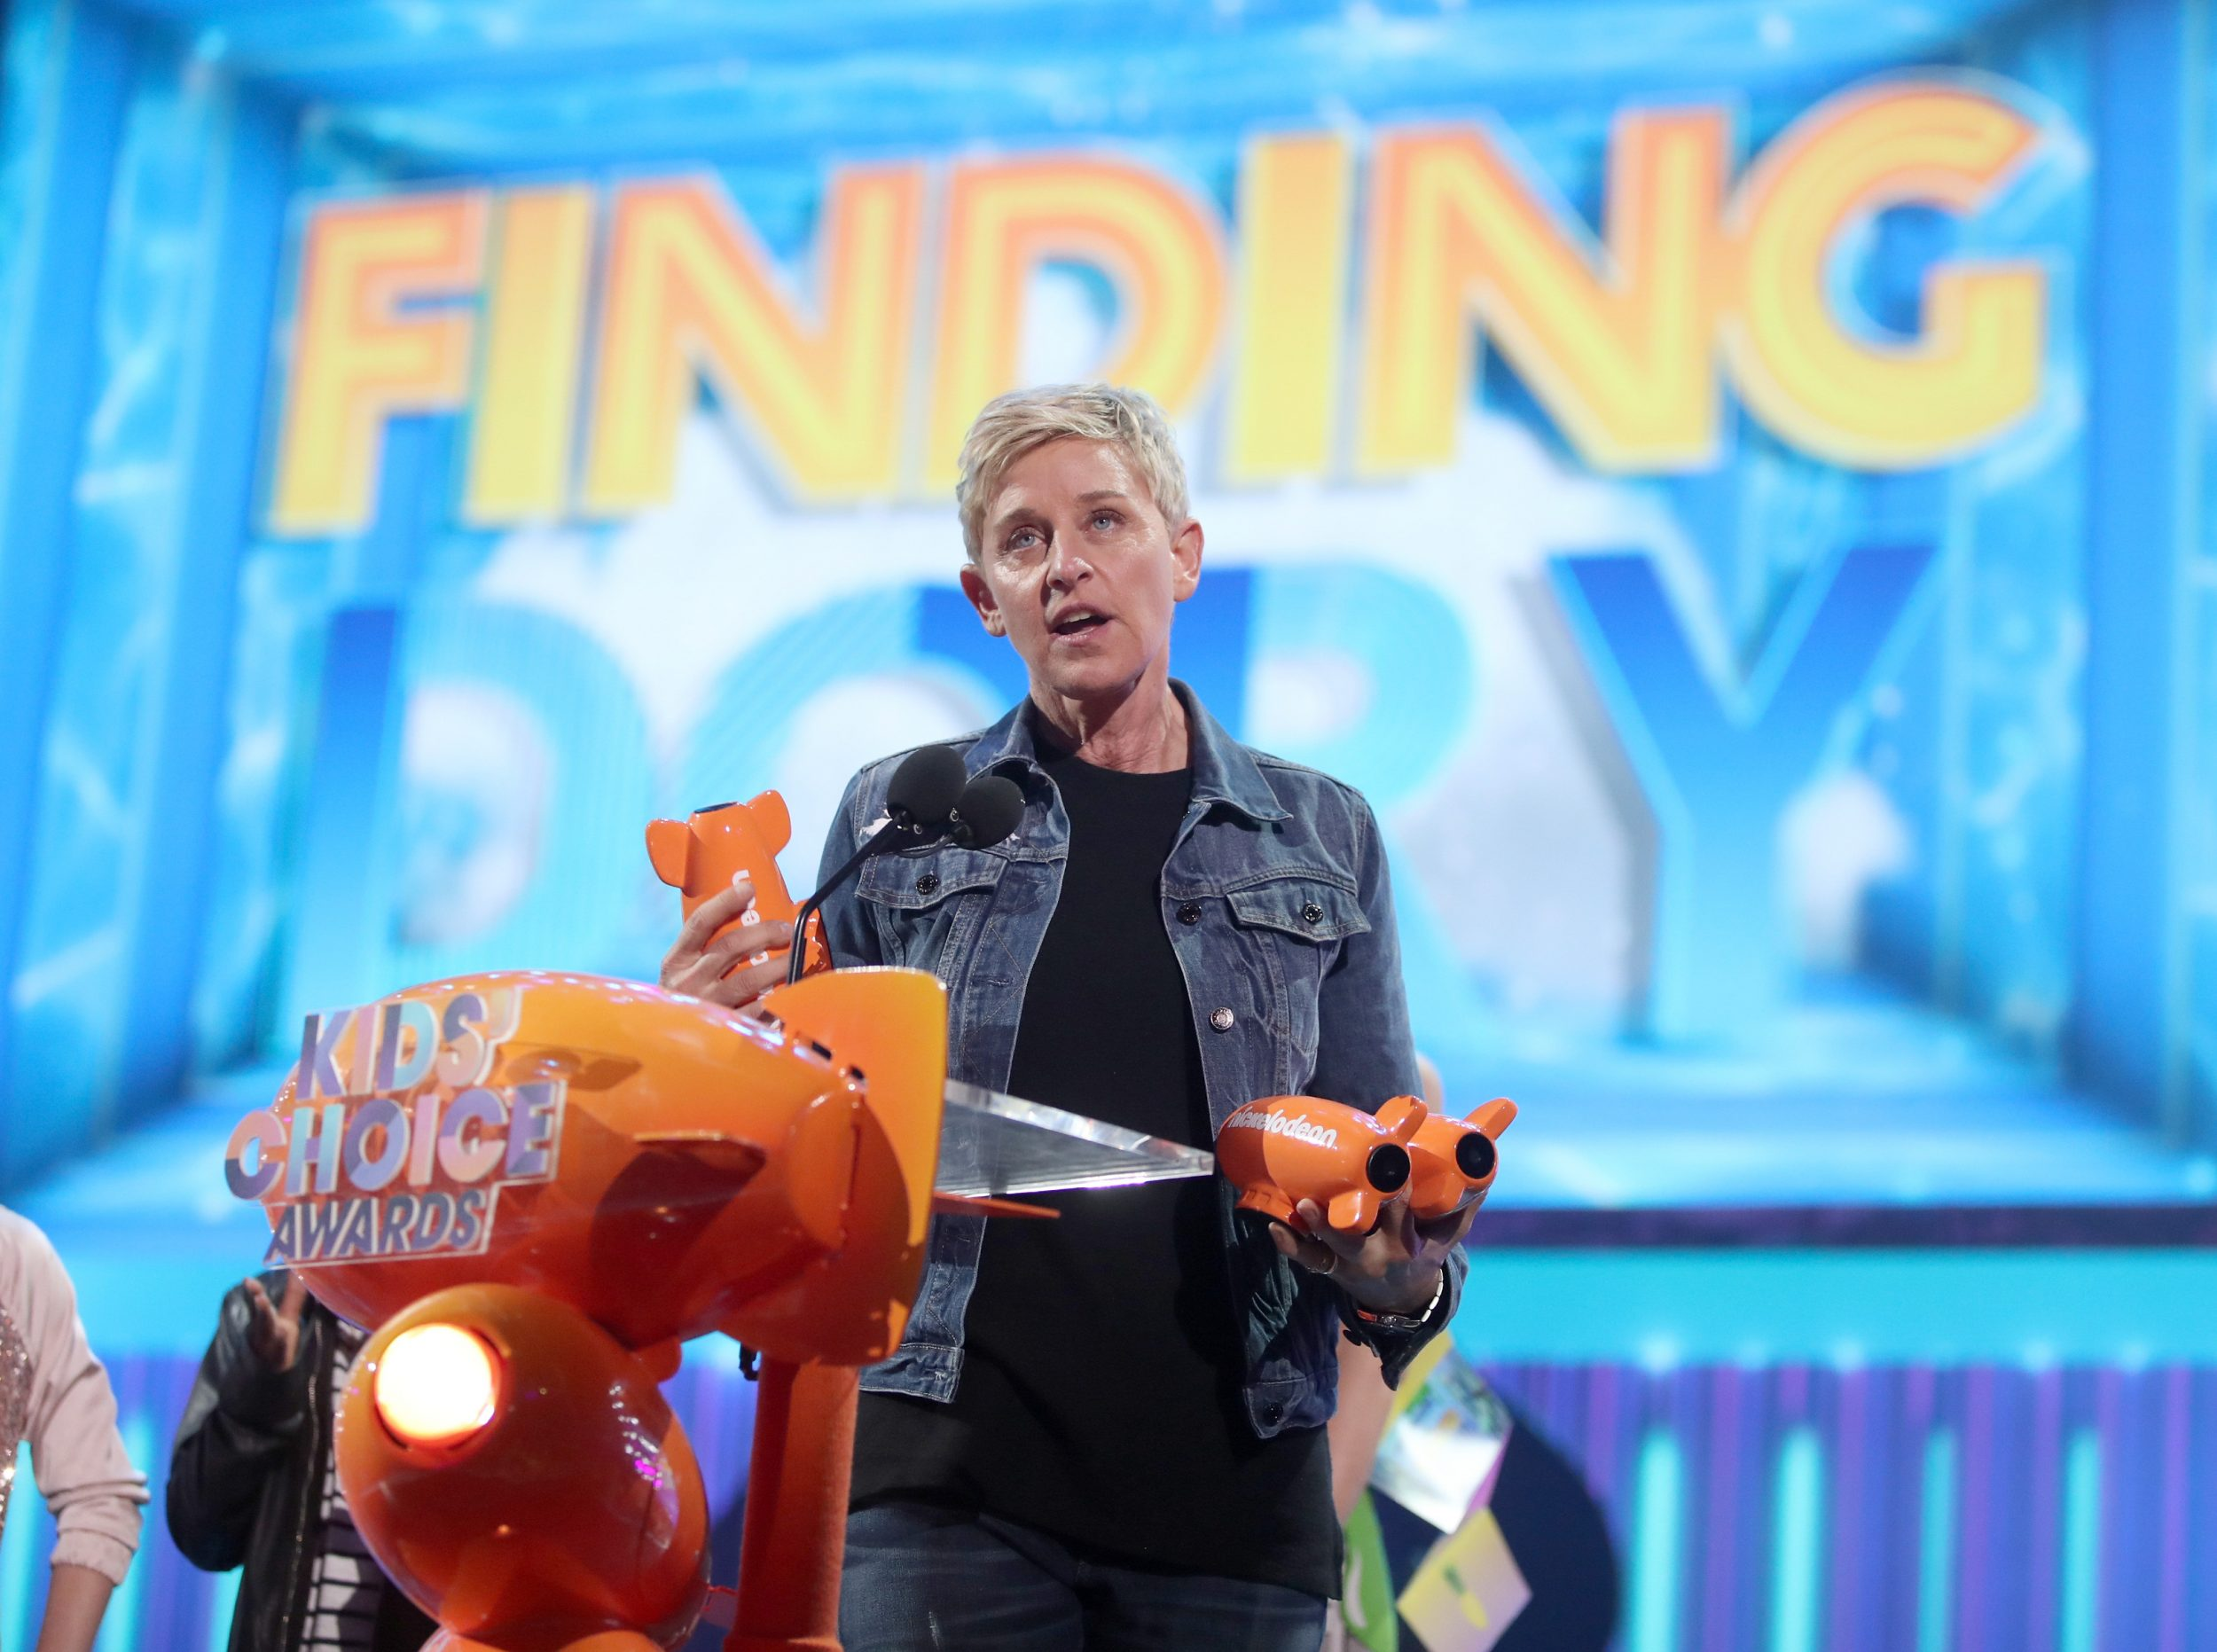 LOS ANGELES, CA - MARCH 11:  TV personality Ellen DeGeneres accepts the award for Favorite Voice From an Animated Movie onstage at Nickelodeon's 2017 Kids' Choice Awards at USC Galen Center on March 11, 2017 in Los Angeles, California.  (Photo by Chris Polk/KCA2017/Getty Images for Nickelodeon)